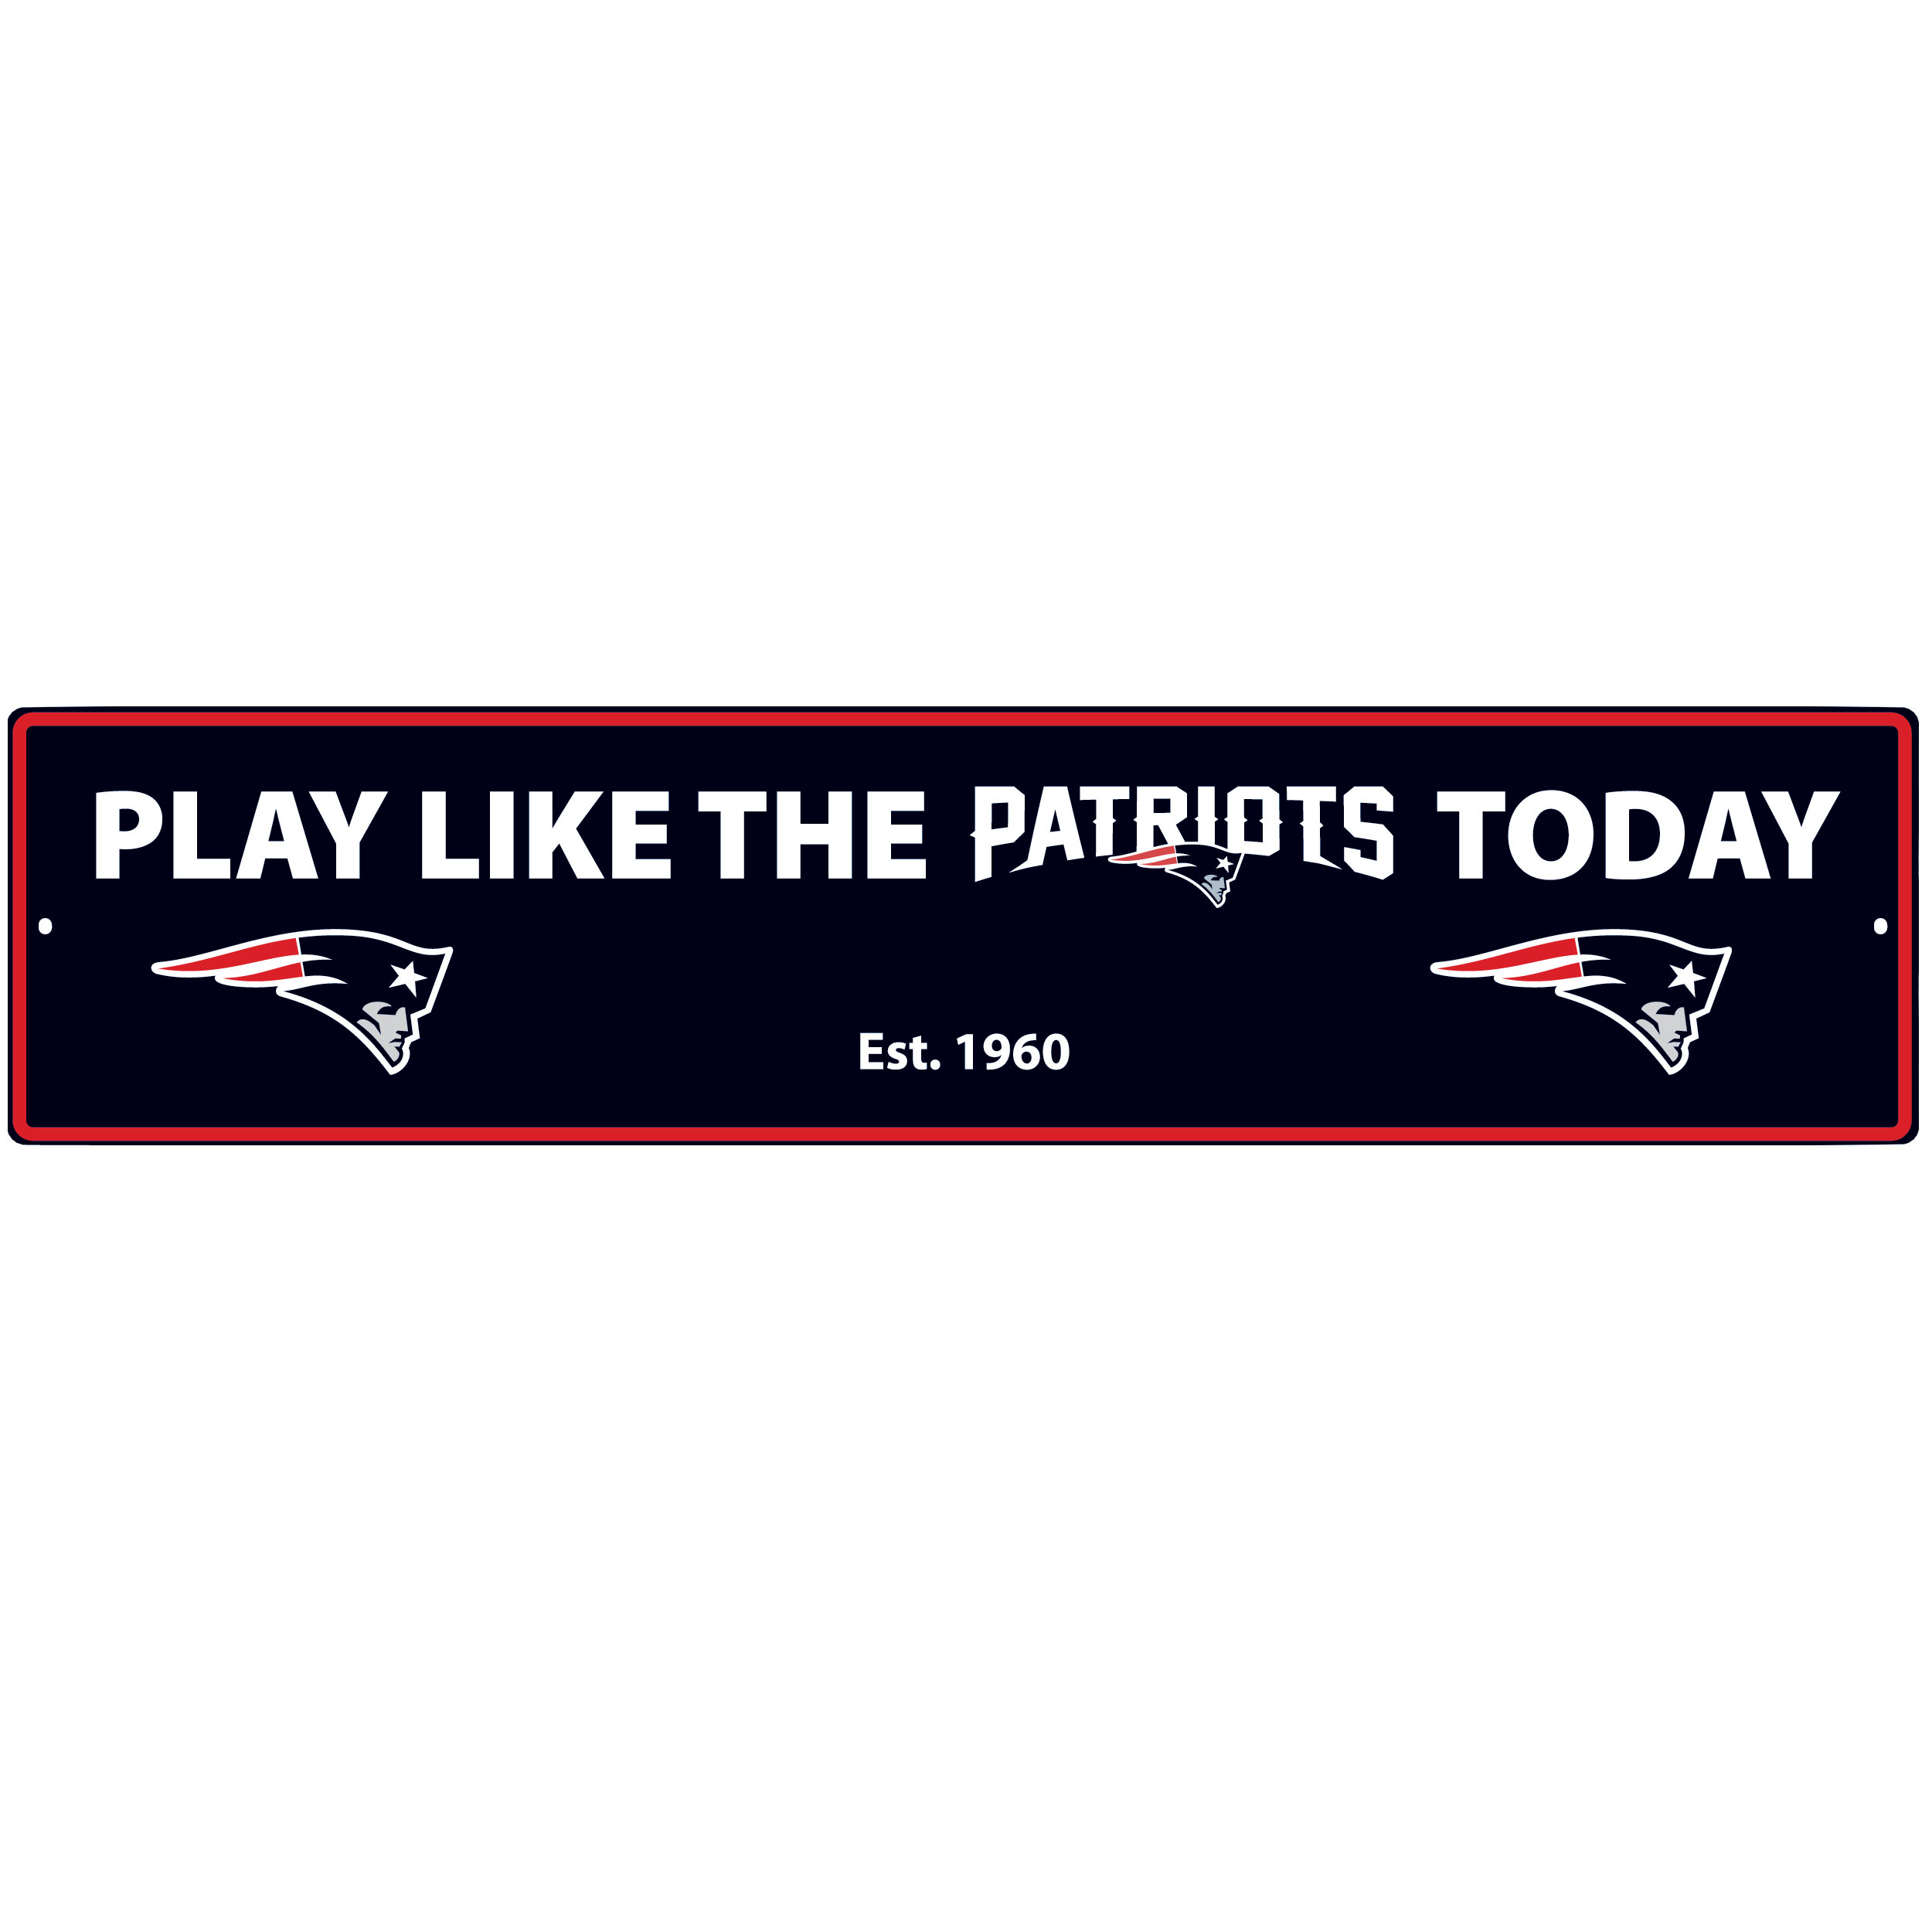 New England Patriots Street Sign Wall Plaque - This motivational plaque is perfect for hanging over the doorway of your fan cave reminding you to play like your champion New England Patriots! The sign is 20 inches wide and made of light-weight stamped aluminum. The bright team colors and classic design make this a must-have home décor accessory that would look great in any game room, living room or office!